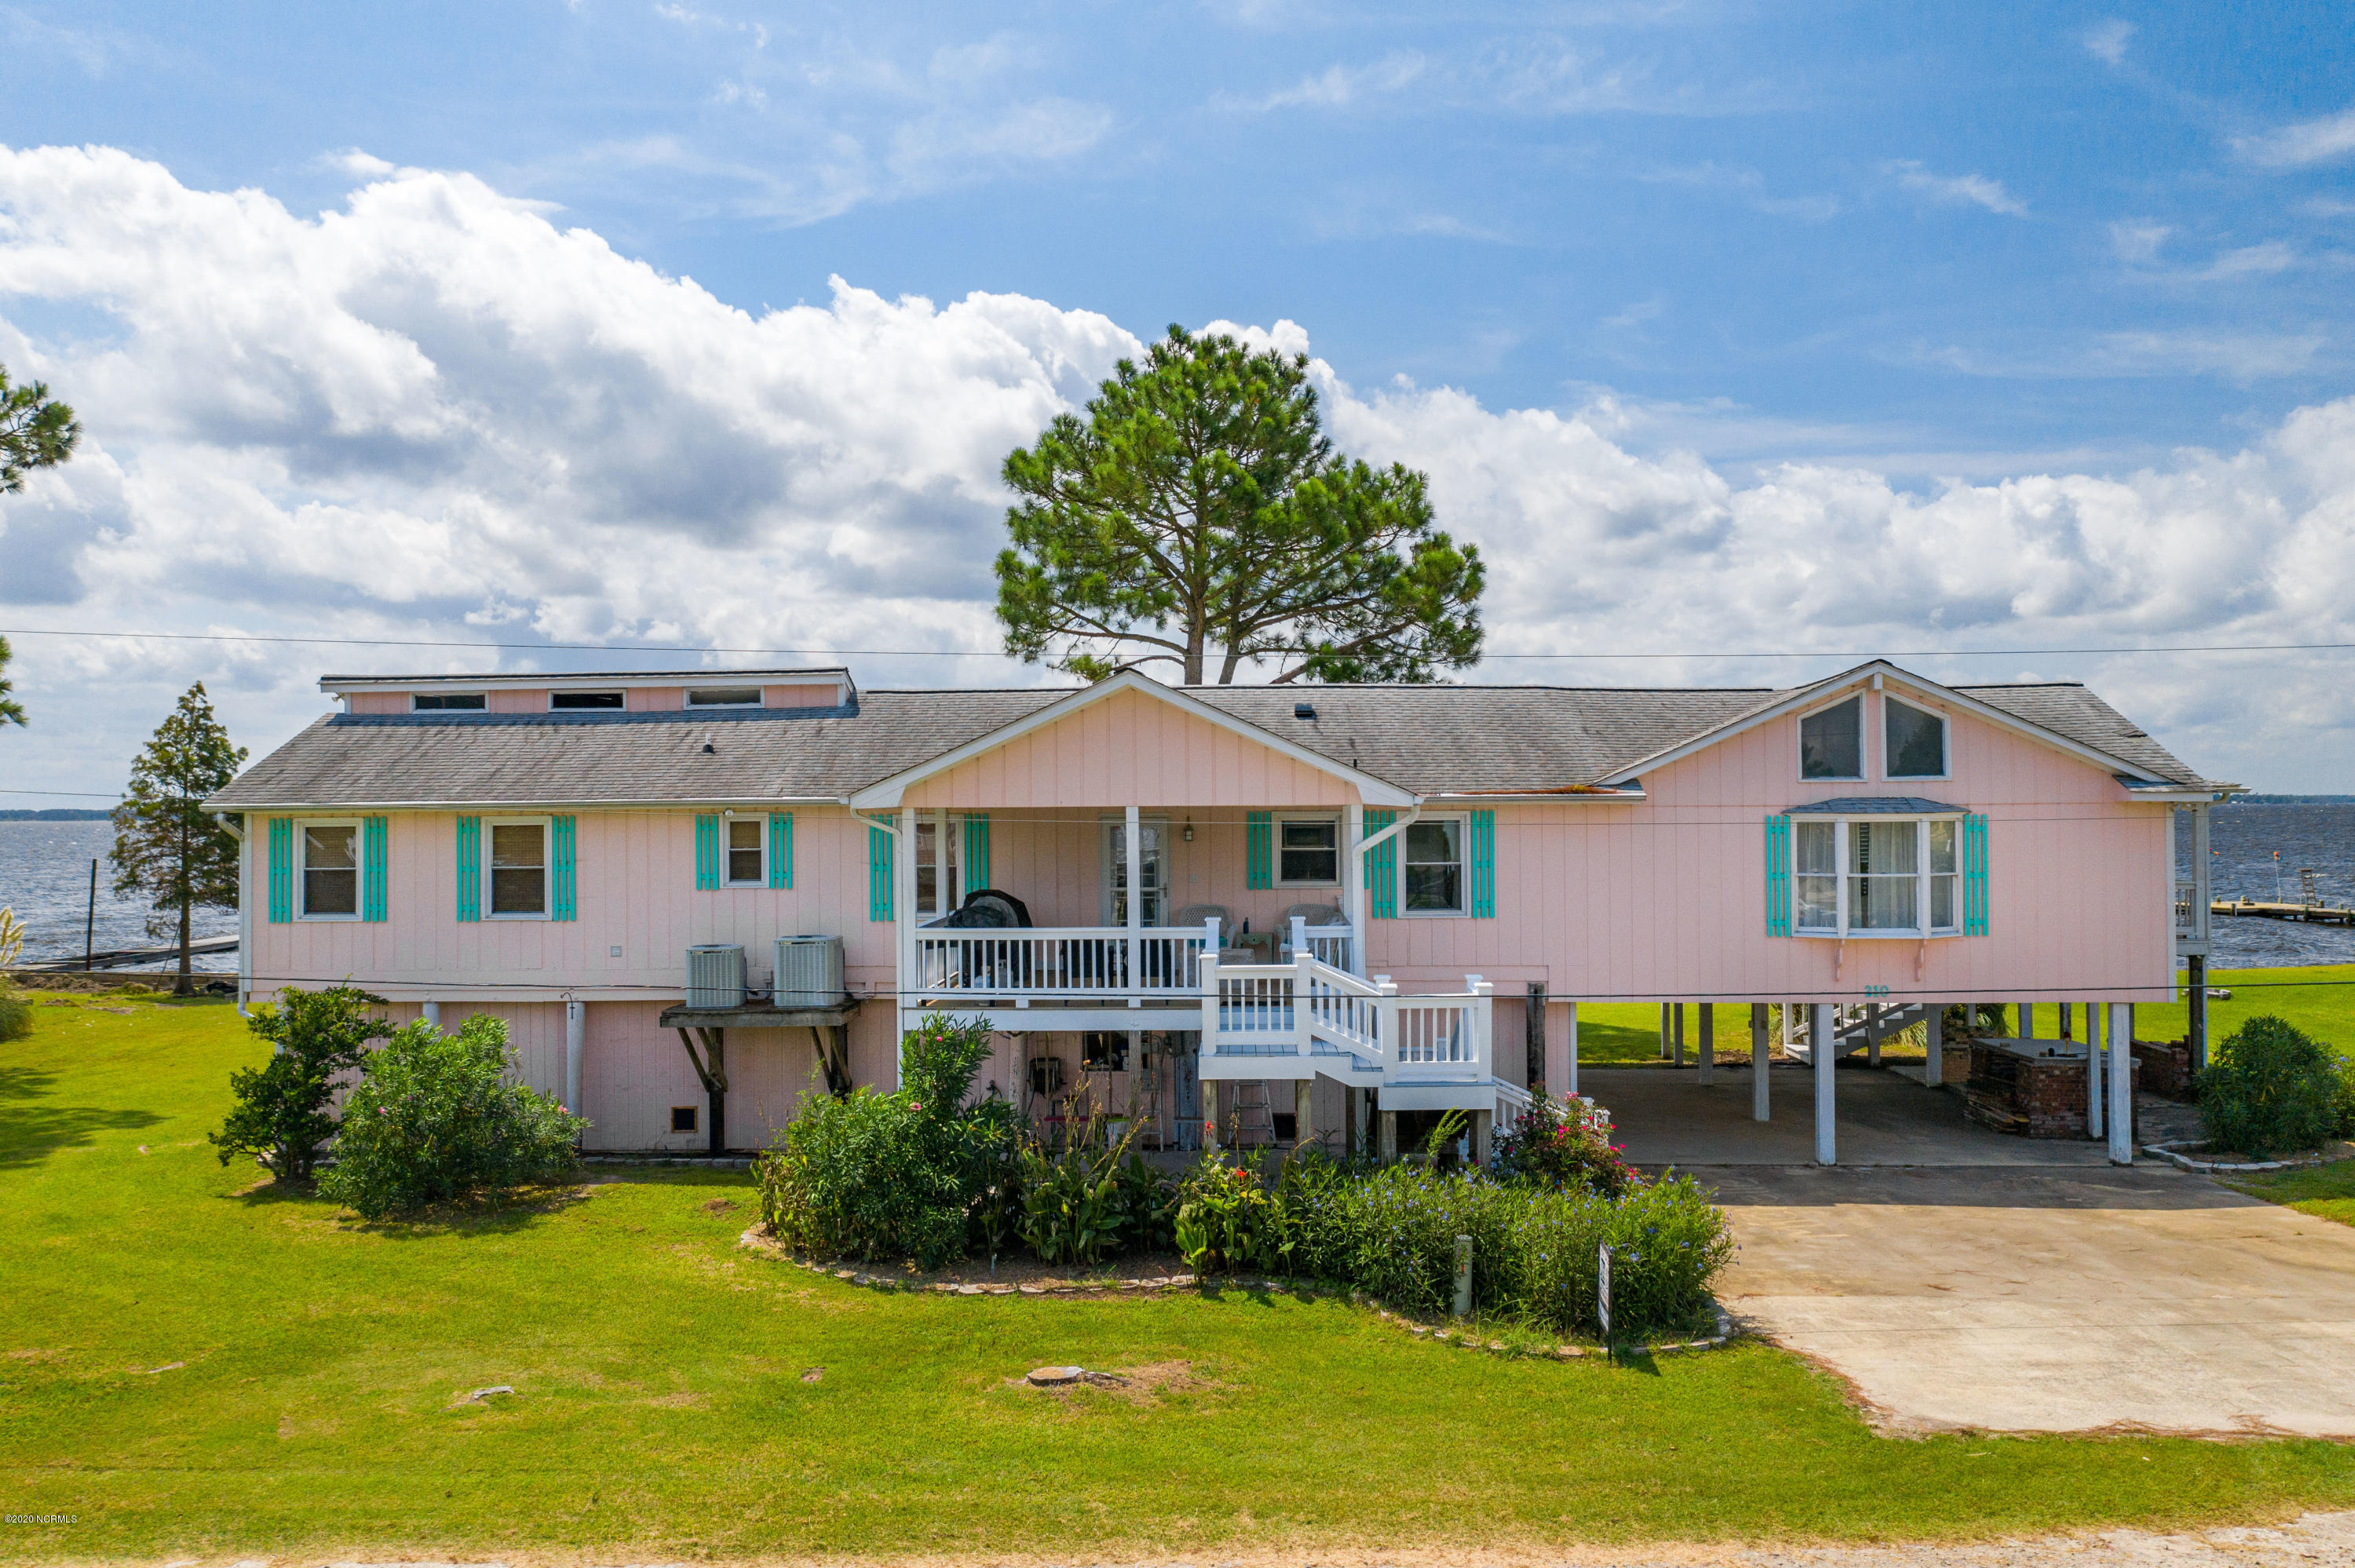 210 Queen Anne Drive, Bath, North Carolina 27808, 3 Bedrooms Bedrooms, 8 Rooms Rooms,2 BathroomsBathrooms,Single family residence,For sale,Queen Anne,100234766